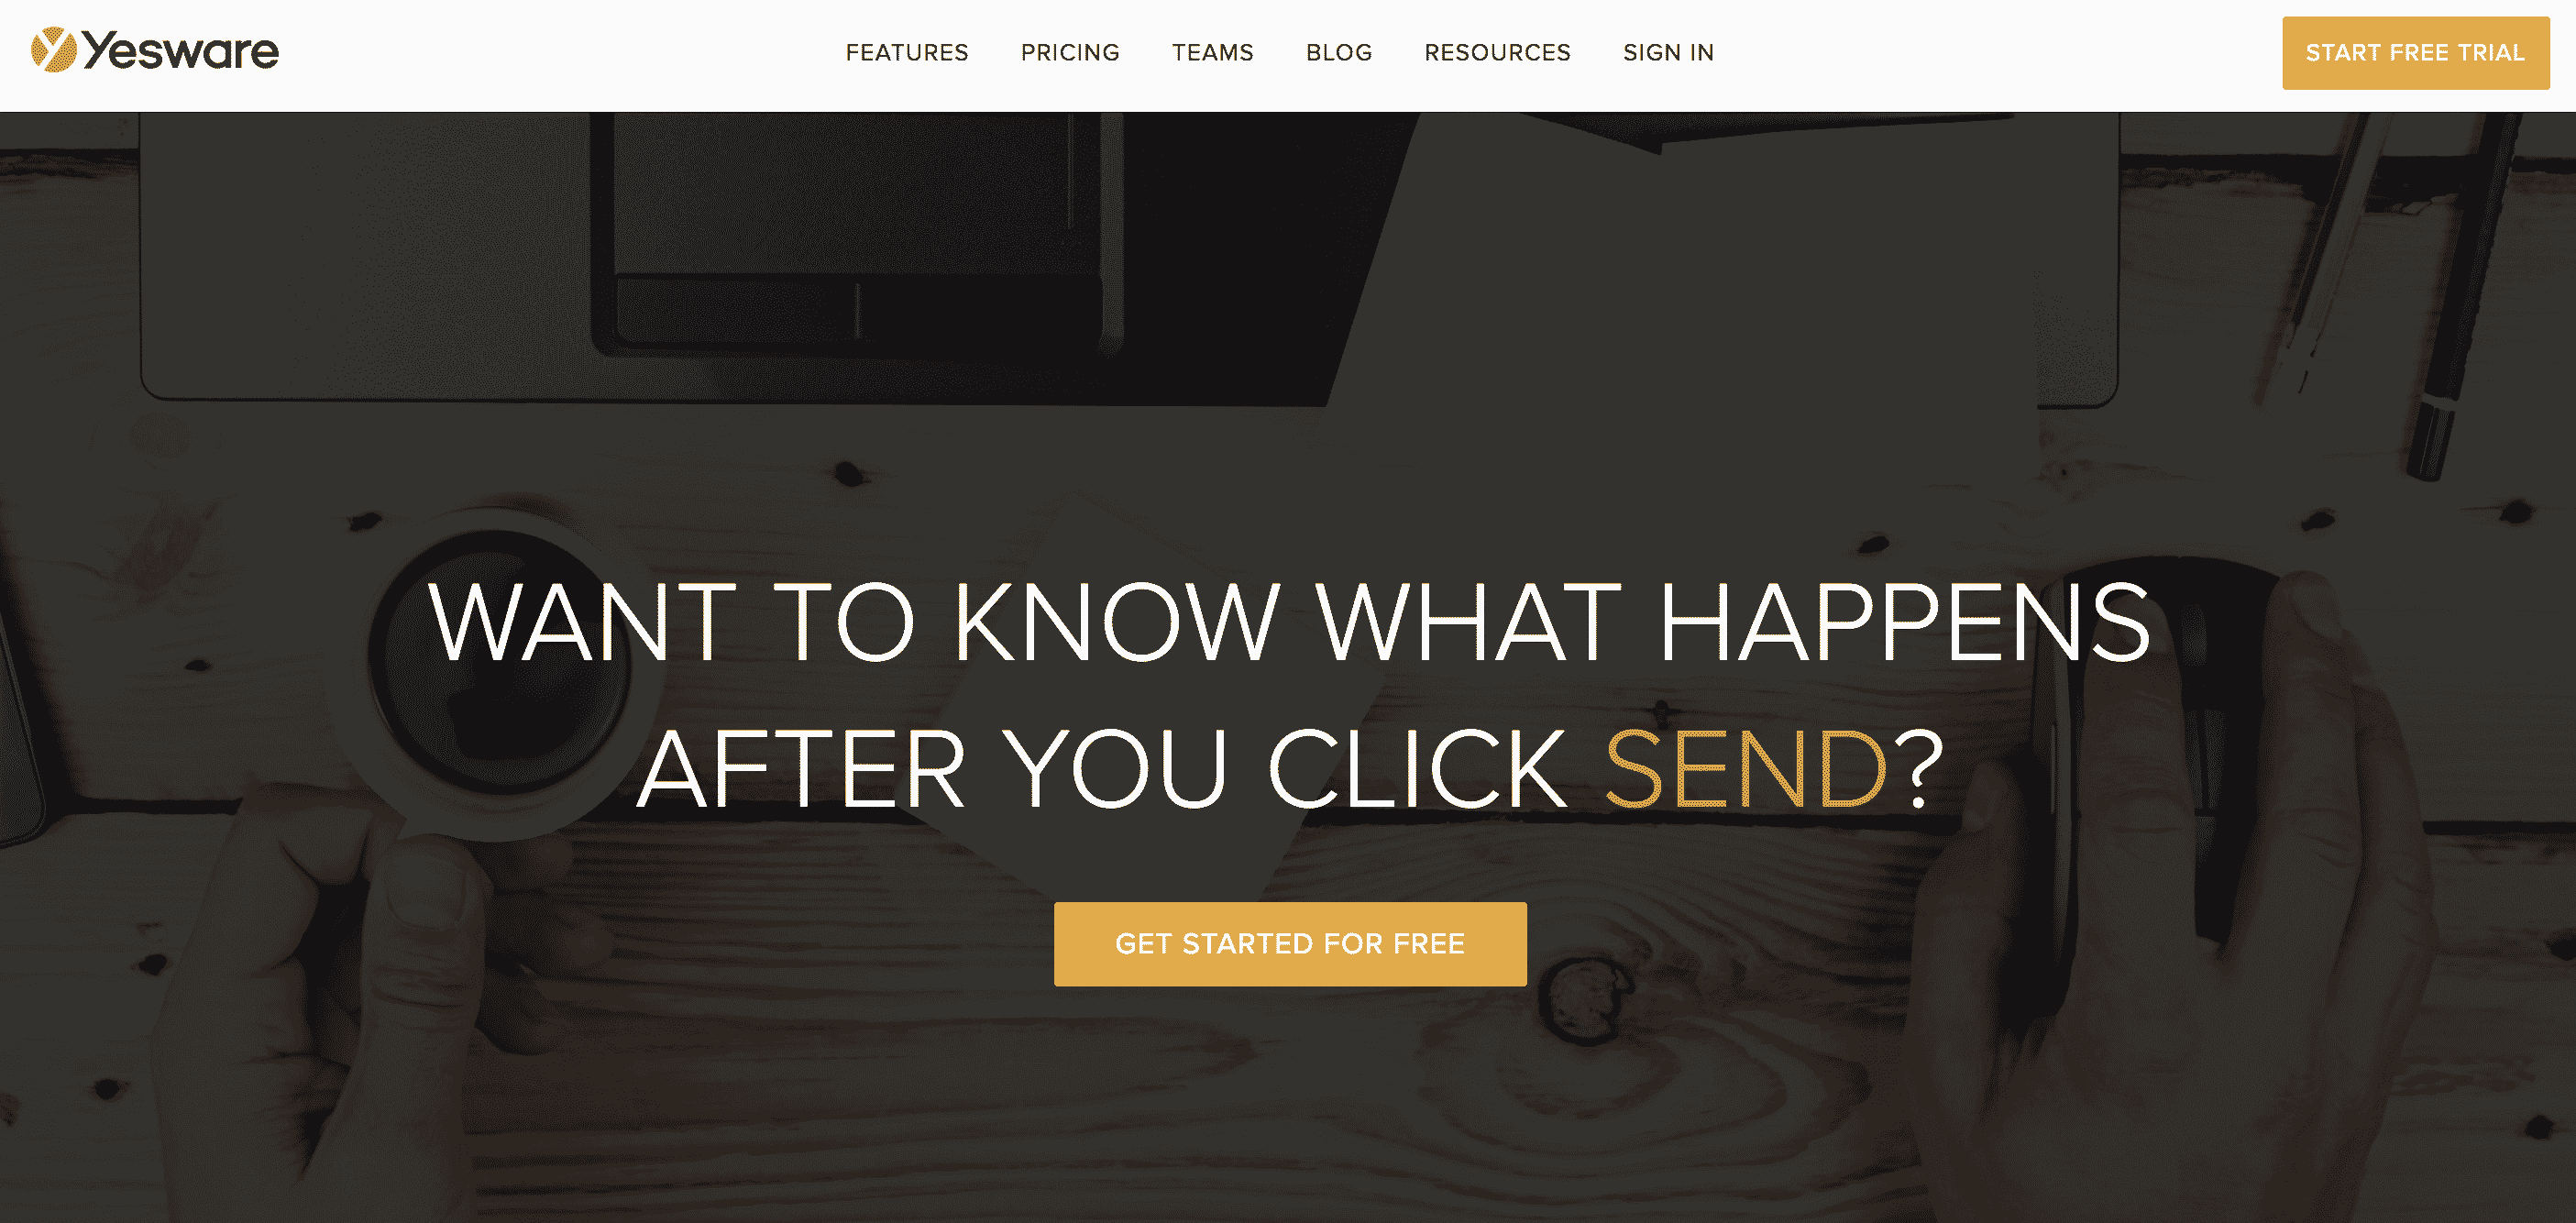 Yesware Email Service